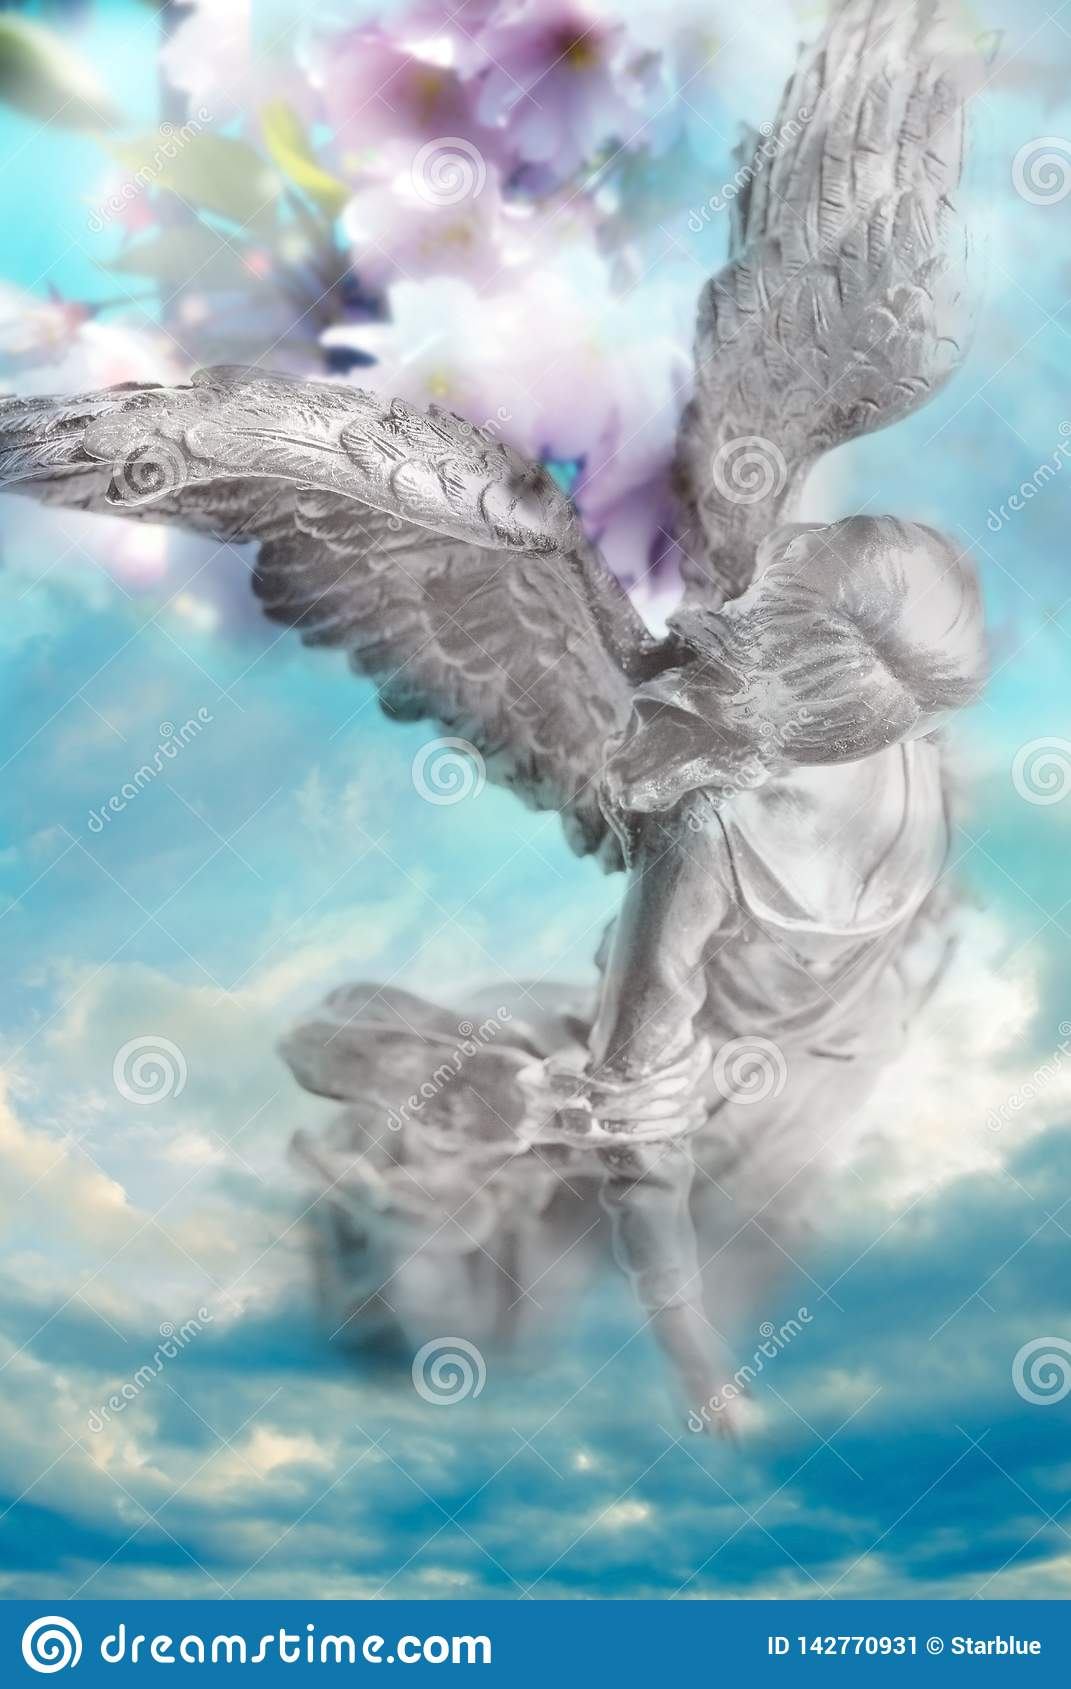 Spring angel archangel of nature with flower background like divine nature concept